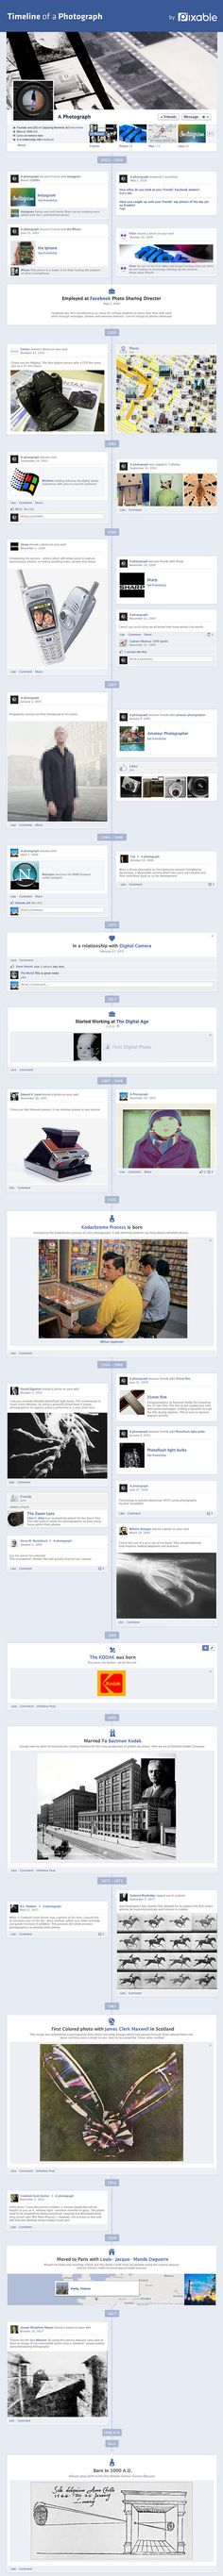 how a photographs Facebook timeline would look